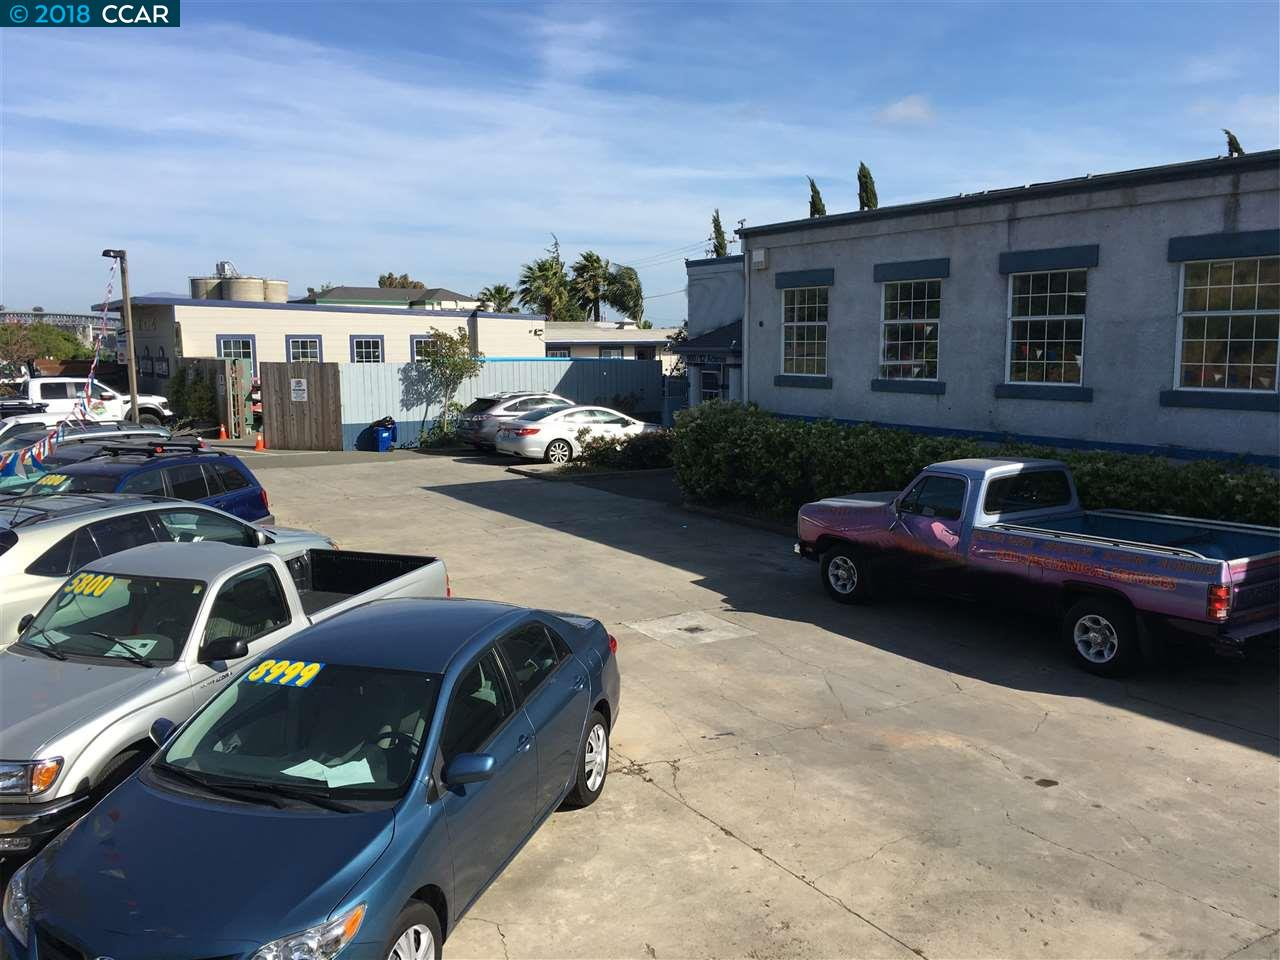 Commercial for Sale at 980 Adams Street 980 Adams Street Benicia, California 94510 United States